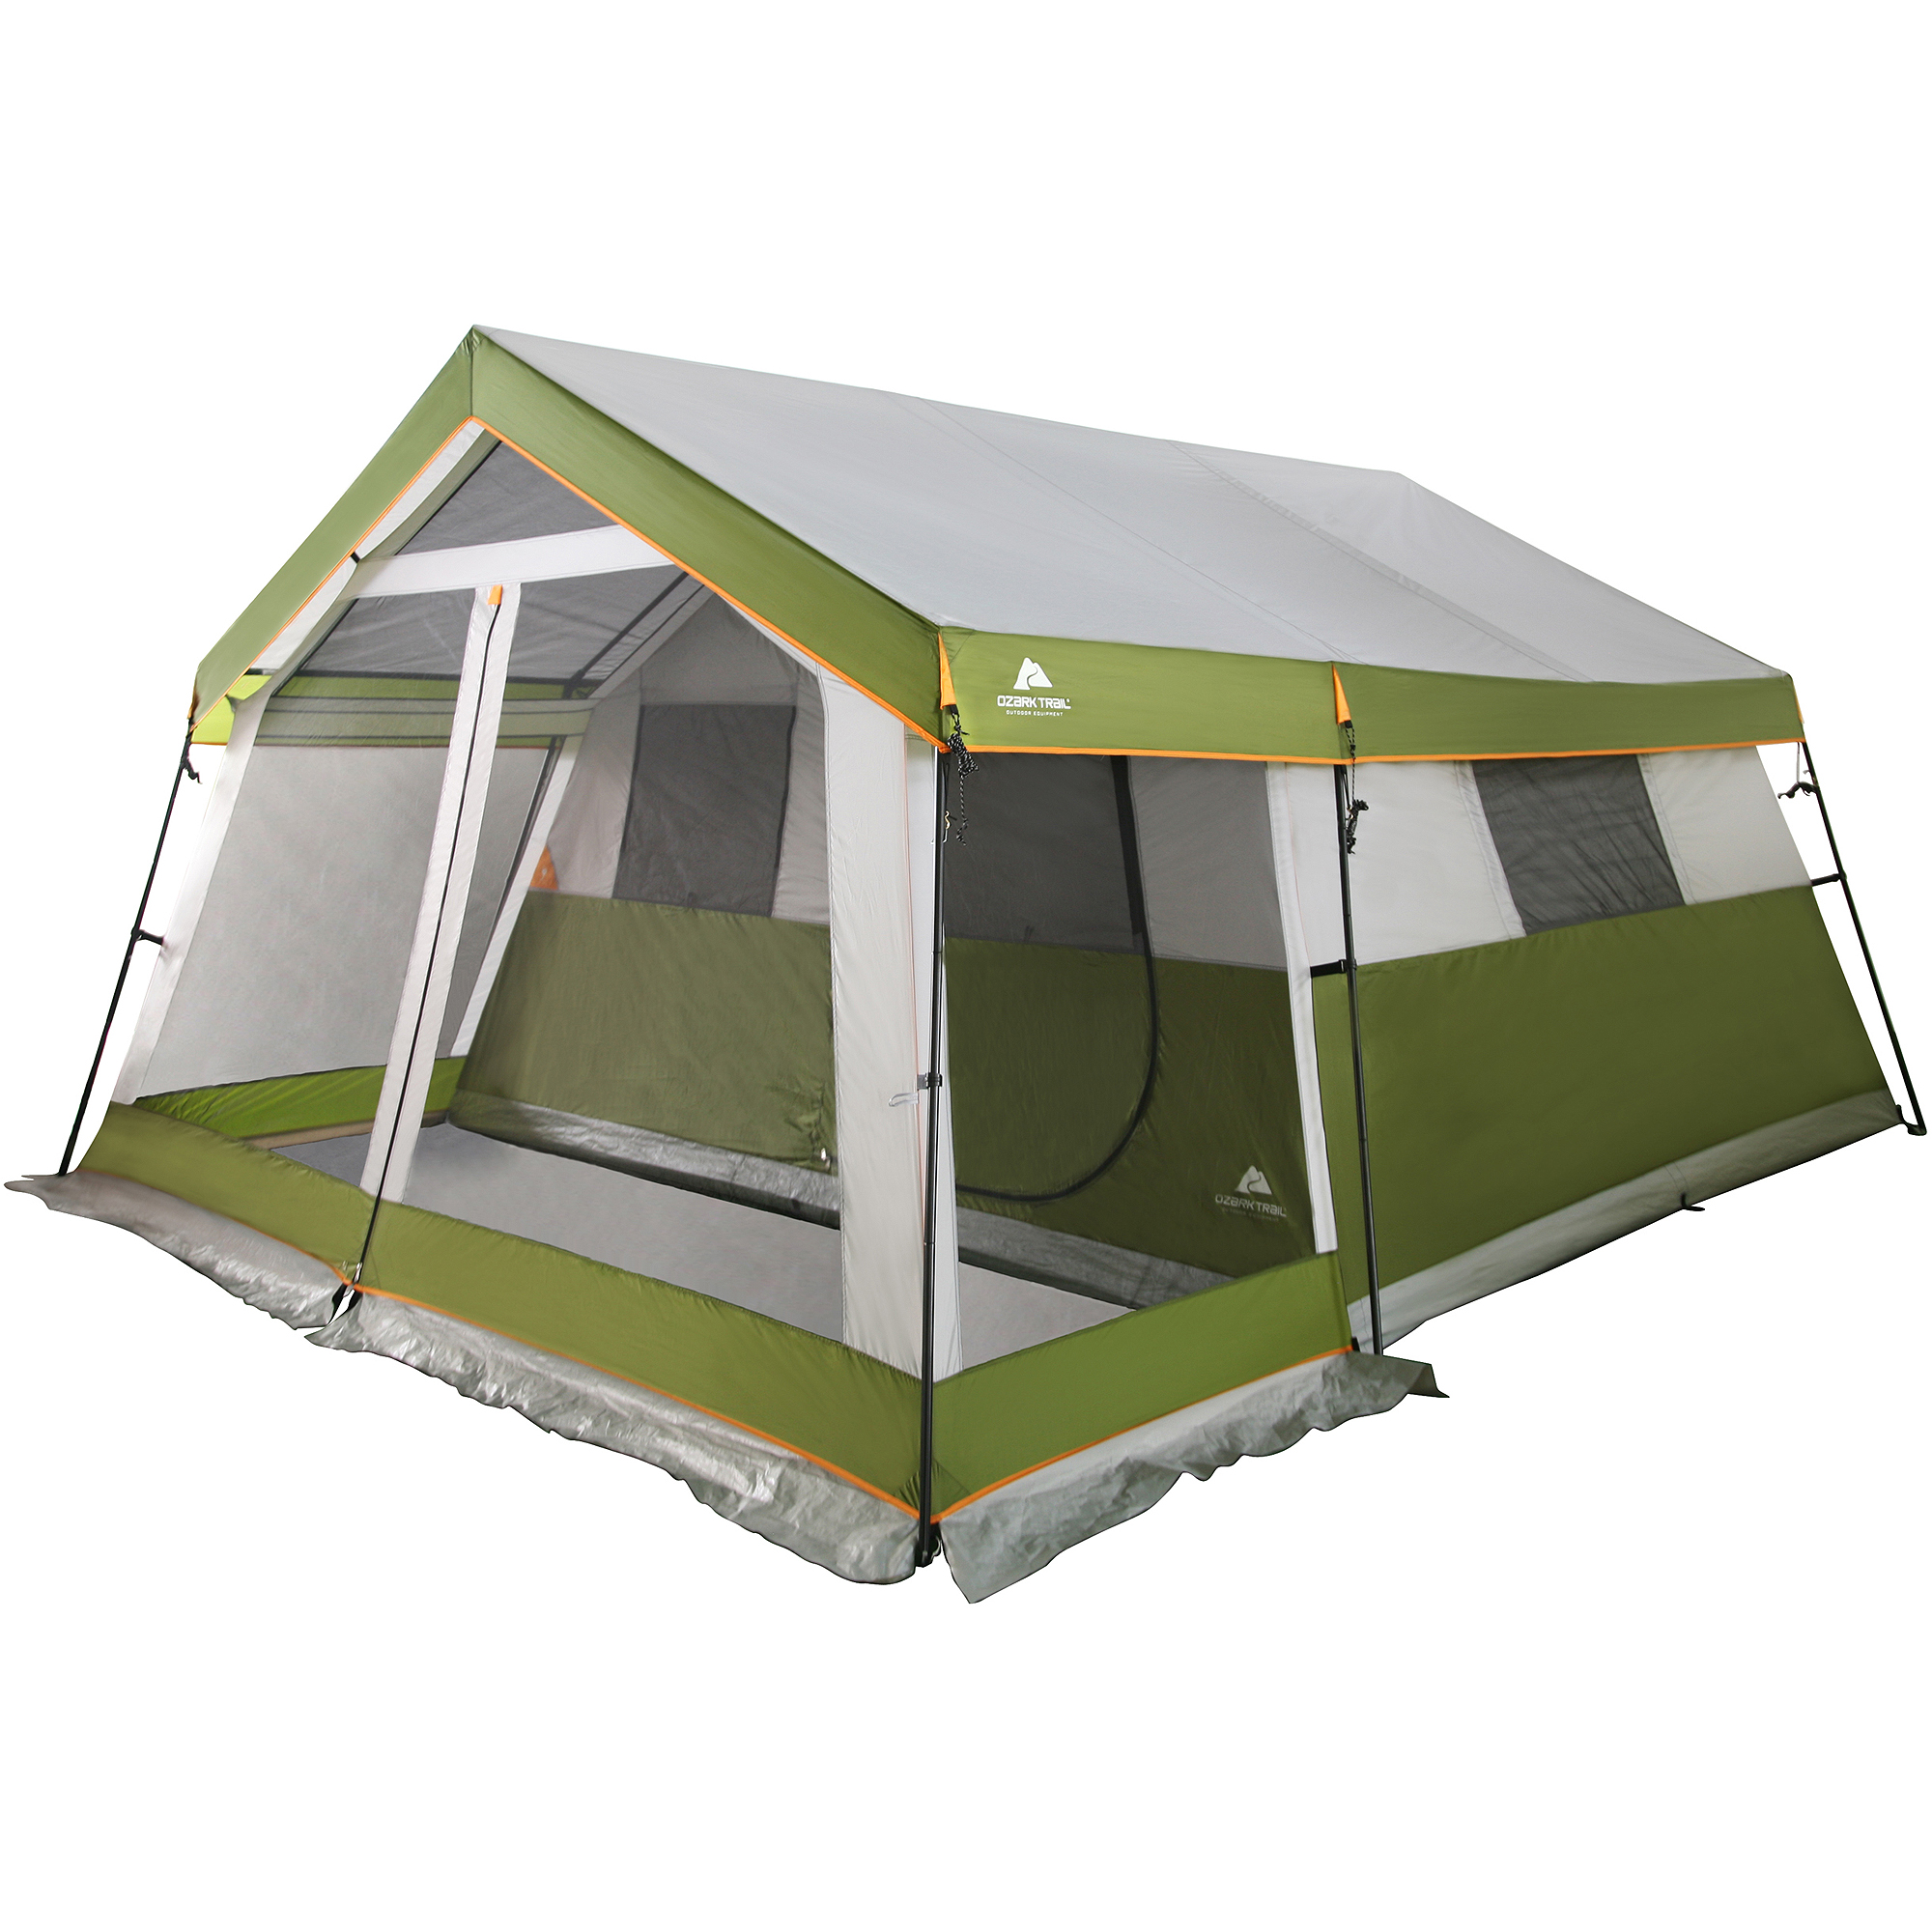 sc 1 st  Walmart & Ozark Trail 8-Person Family Cabin Tent with Screen Porch - Walmart.com